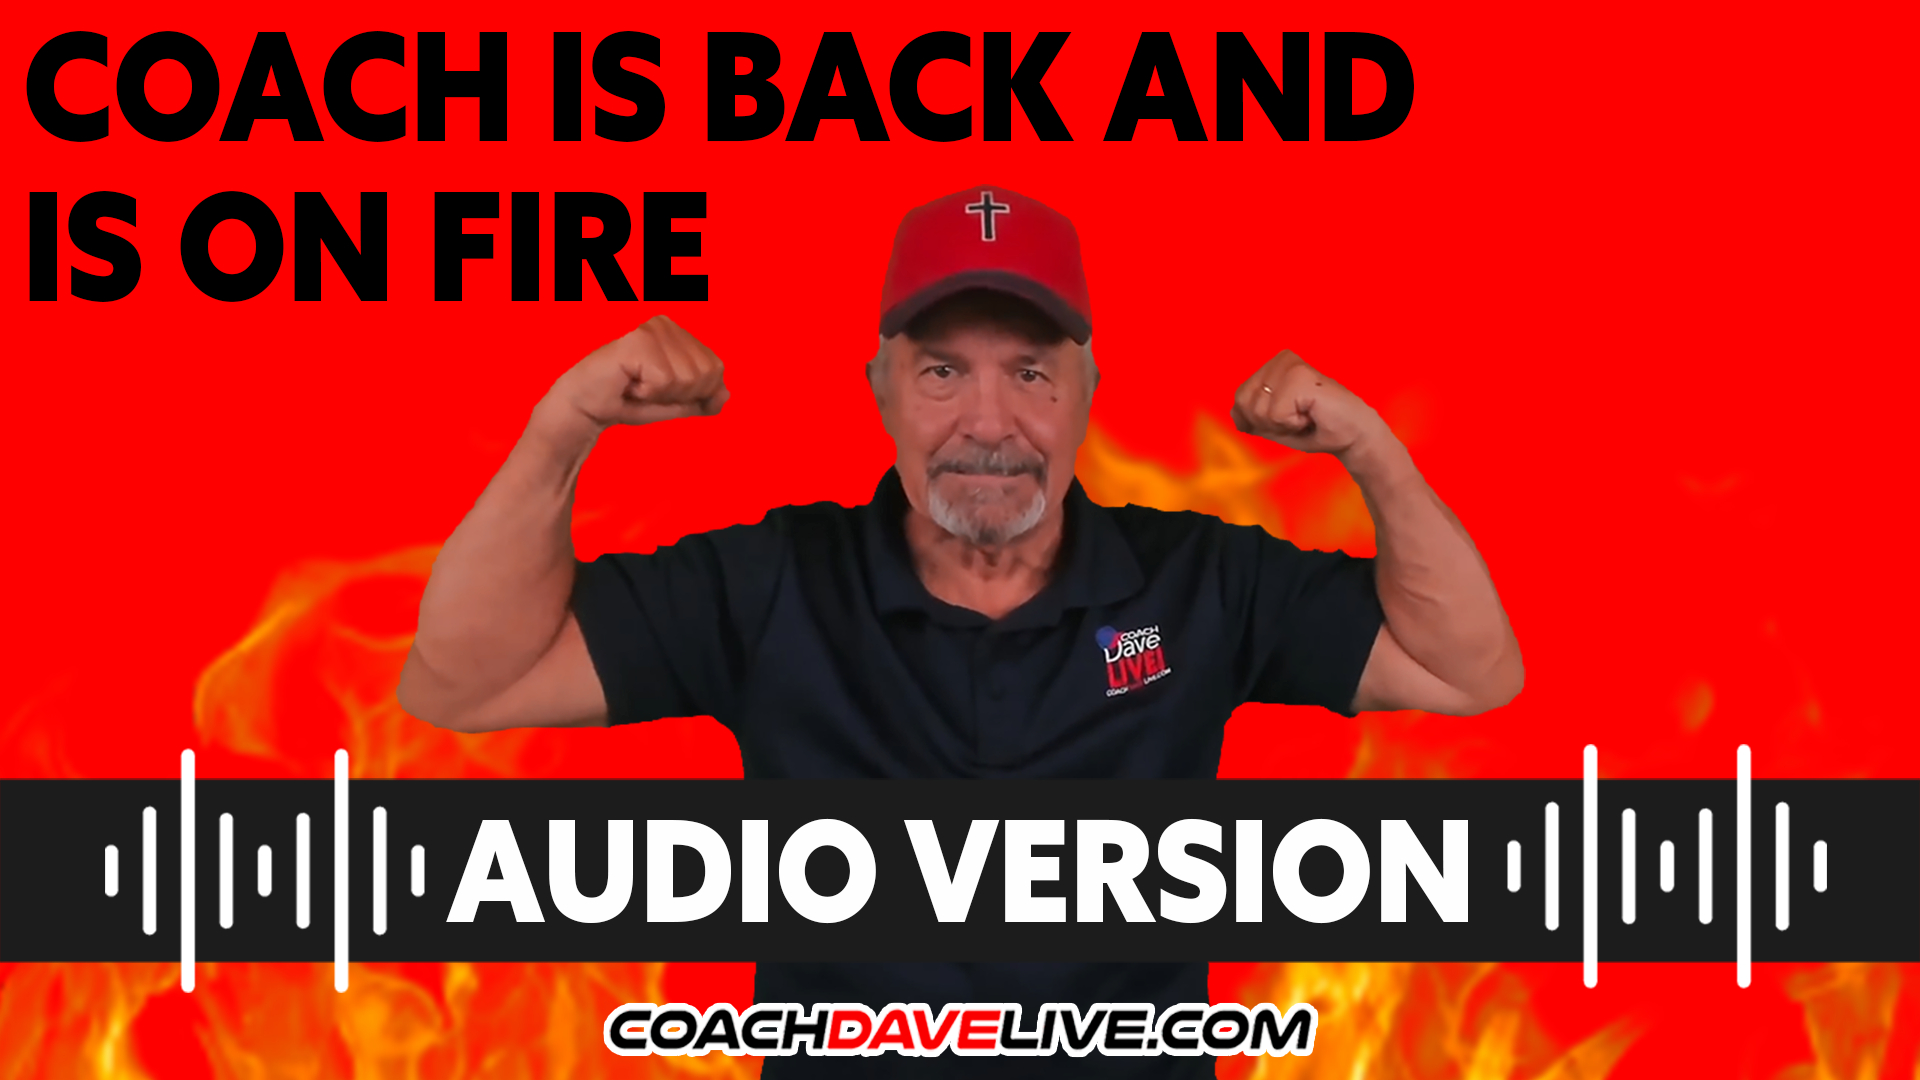 Coach Dave LIVE   9-15-2021   COACH IS BACK AND IS ON FIRE! - AUDIO ONLY